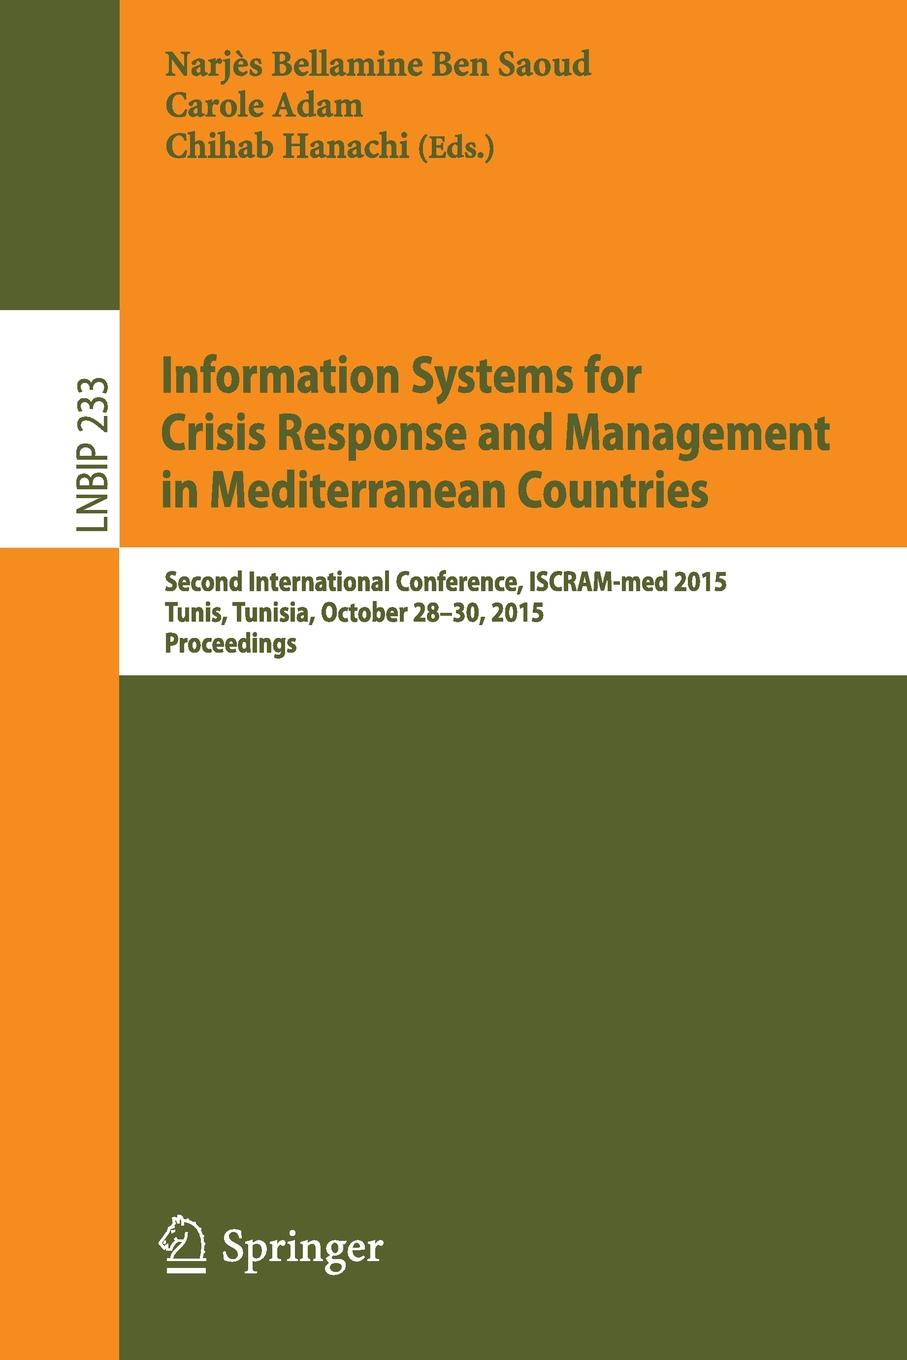 Information Systems for Crisis Response and Management in Mediterranean Countries. Second International Conference, ISCRAM-med 2015, Tunis, Tunisia, October 28-30, 2015, Proceedings